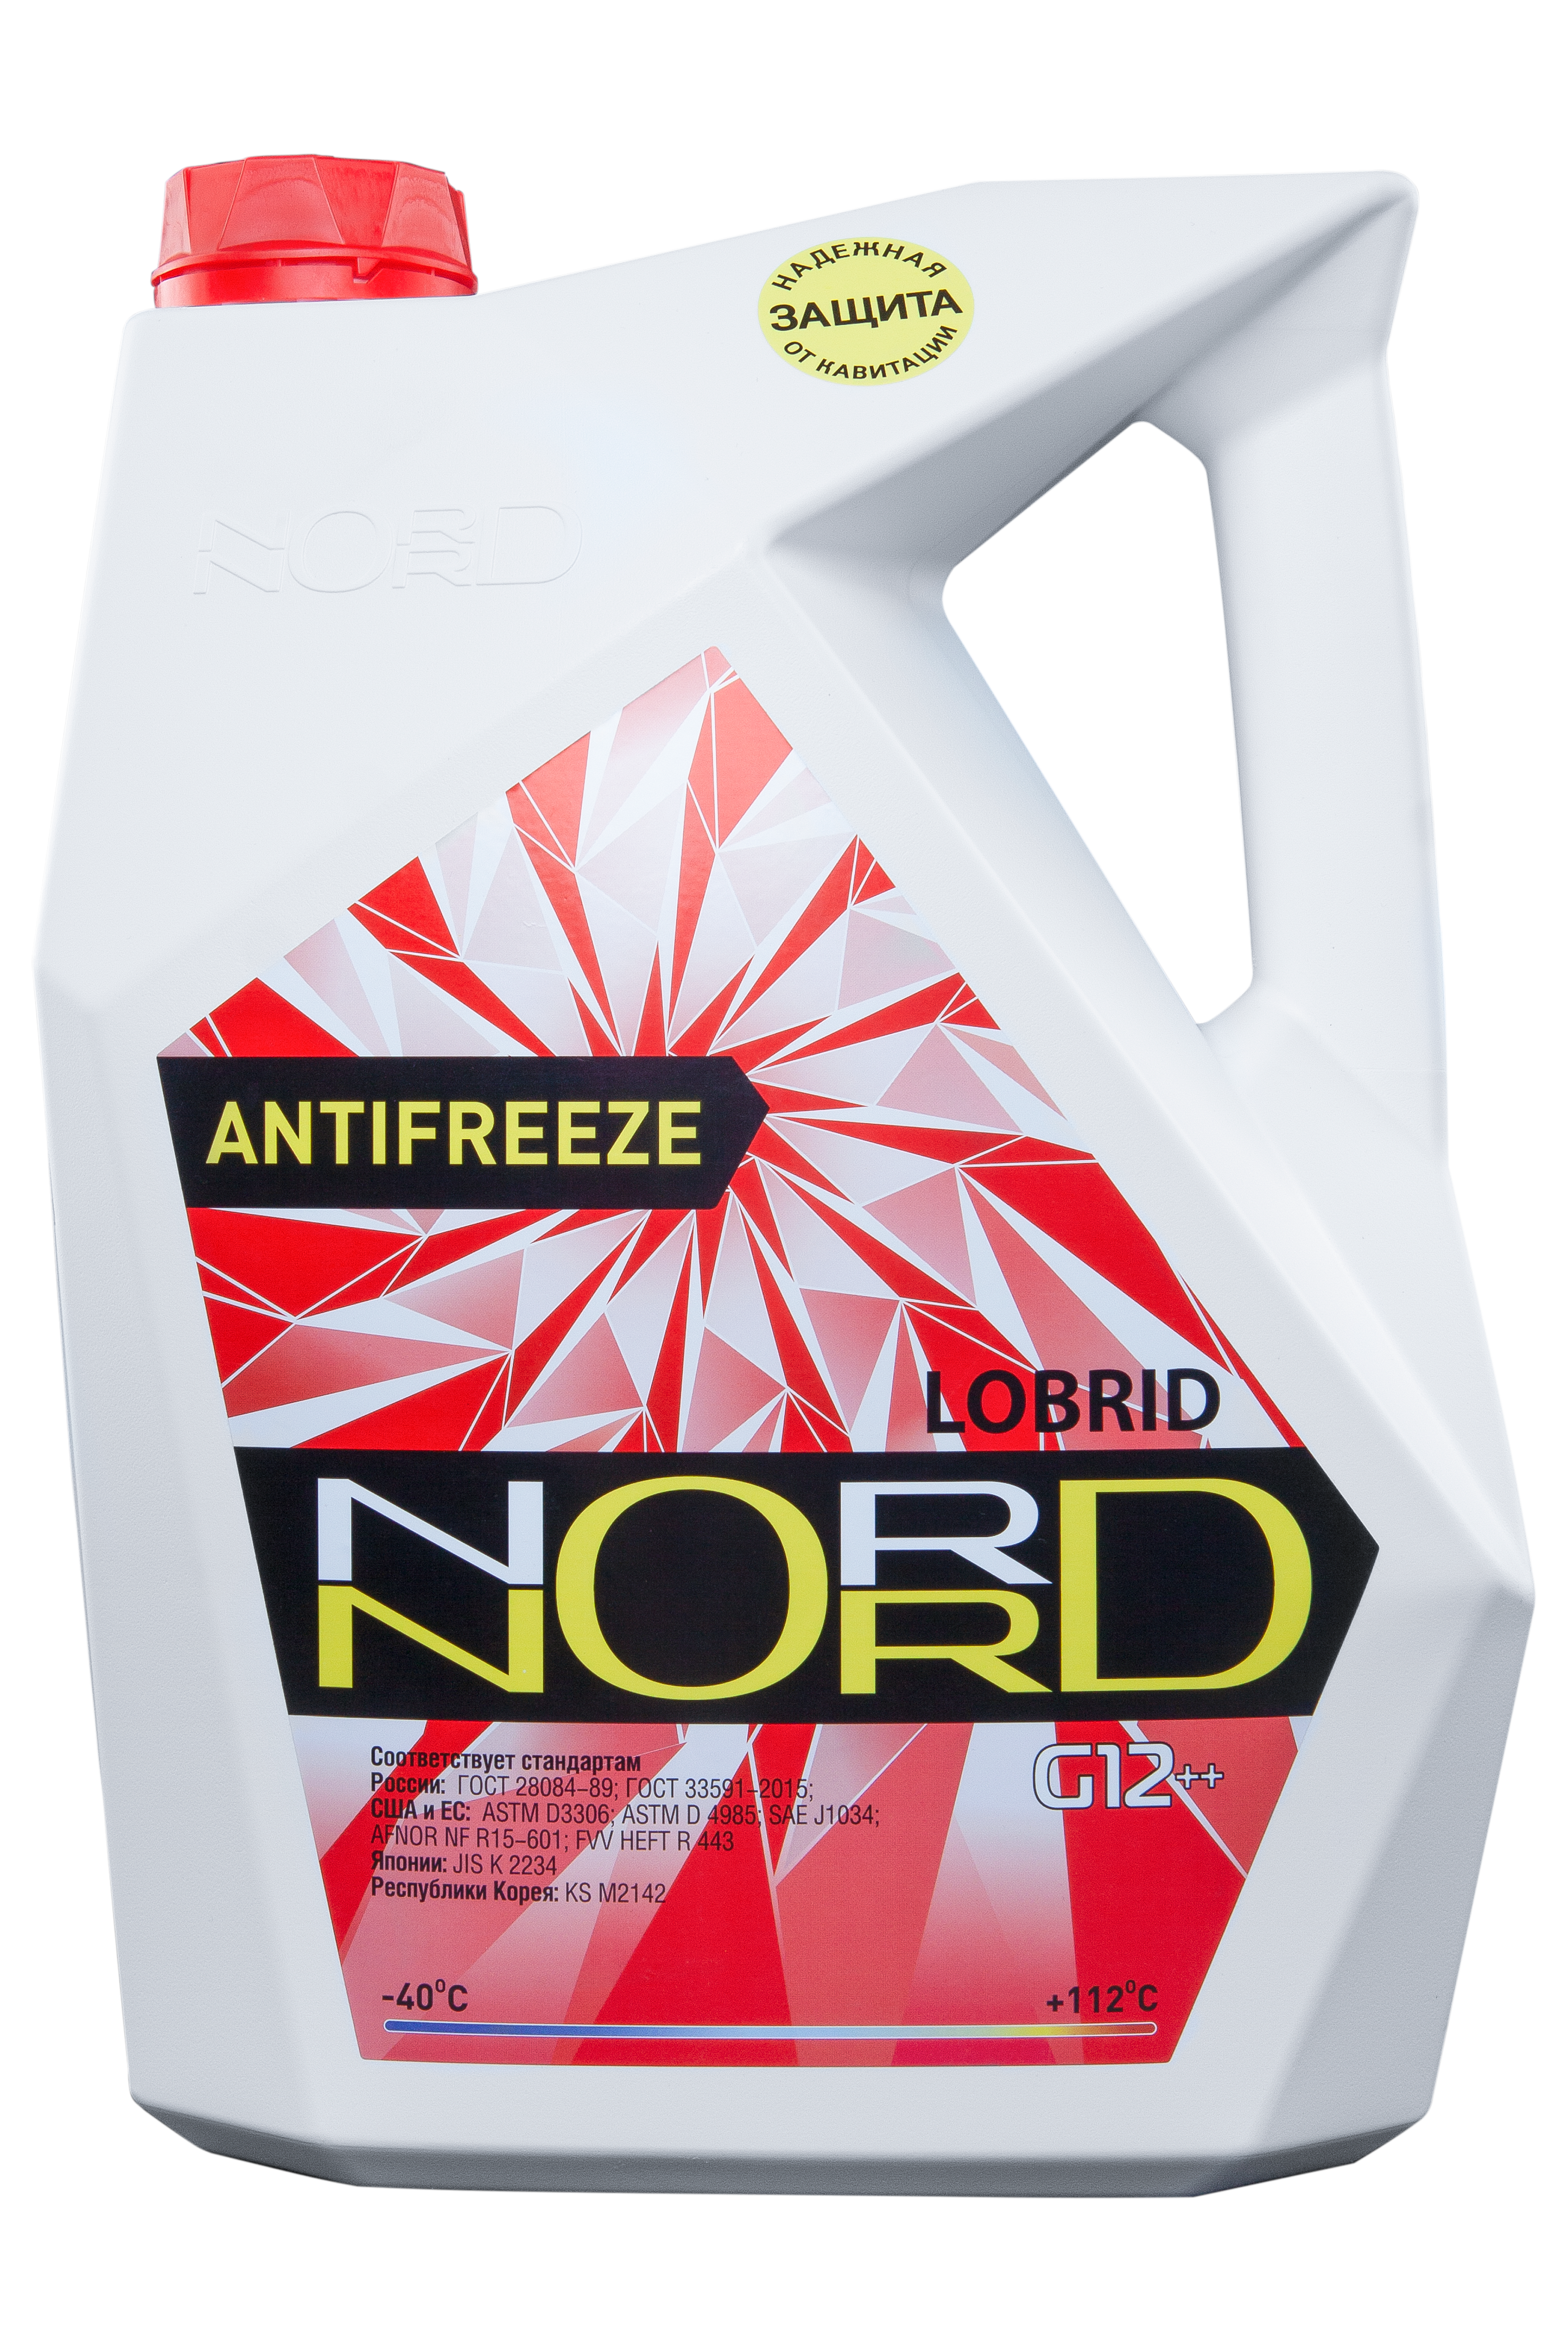 nord NR20485 Антифриз NORD High Quality Antifreeze готовый -40C красный 10 кг